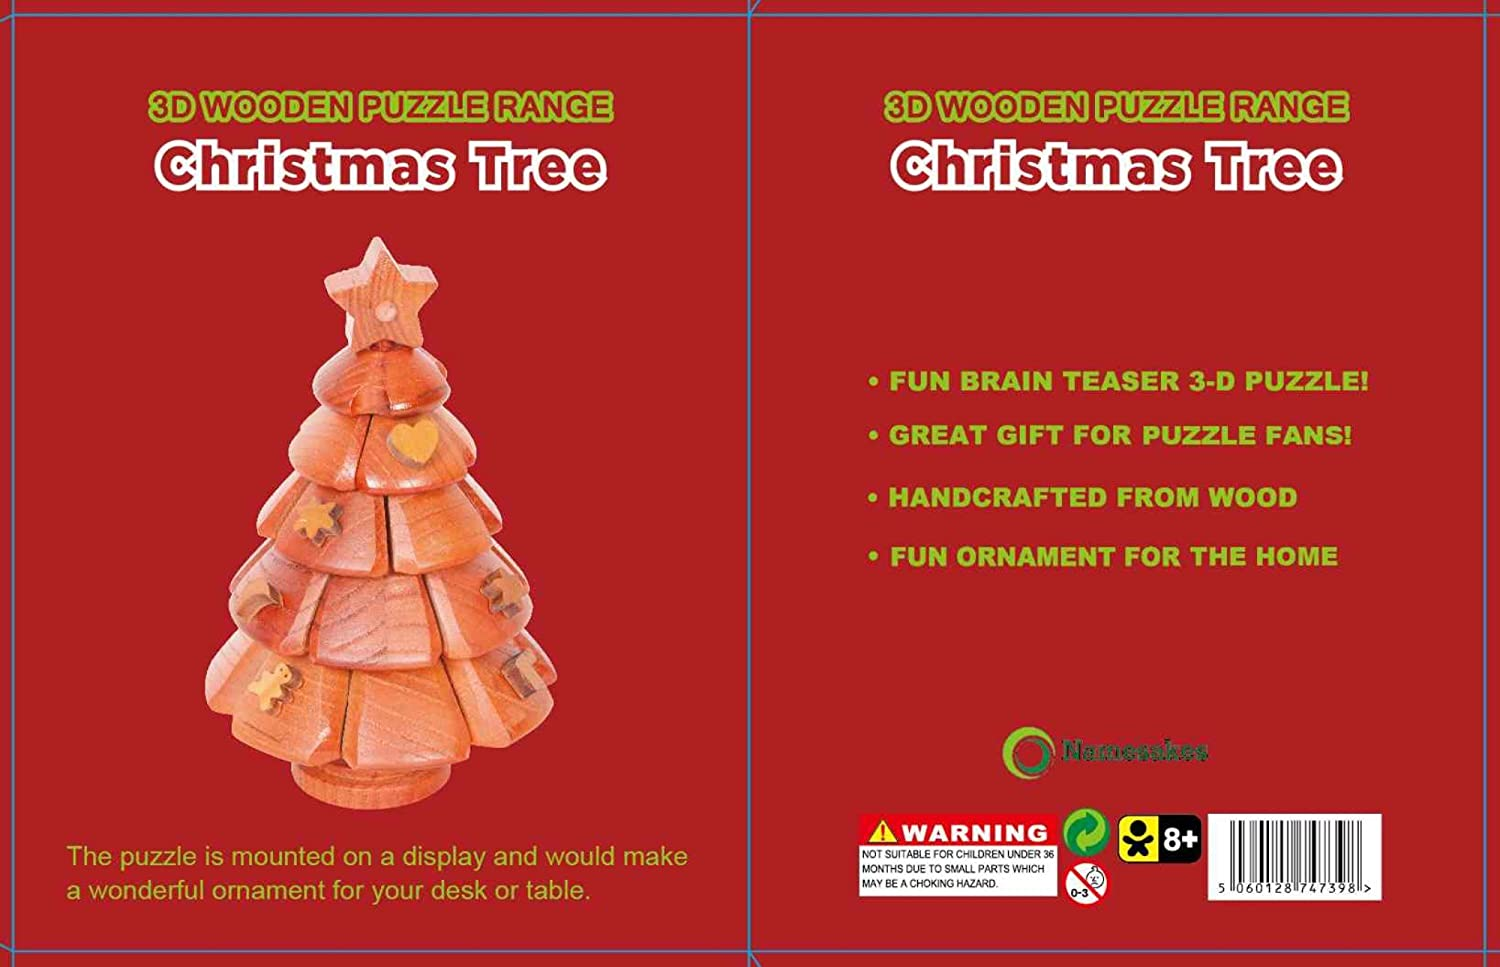 Christmas Brain Teasers For Adults.Namesakes Christmas Tree 3d Wooden Jigsaw Puzzles For Grown Ups Children Novelty Brain Teasers Toy For Adults Kids Xmas Ornament Decoration For